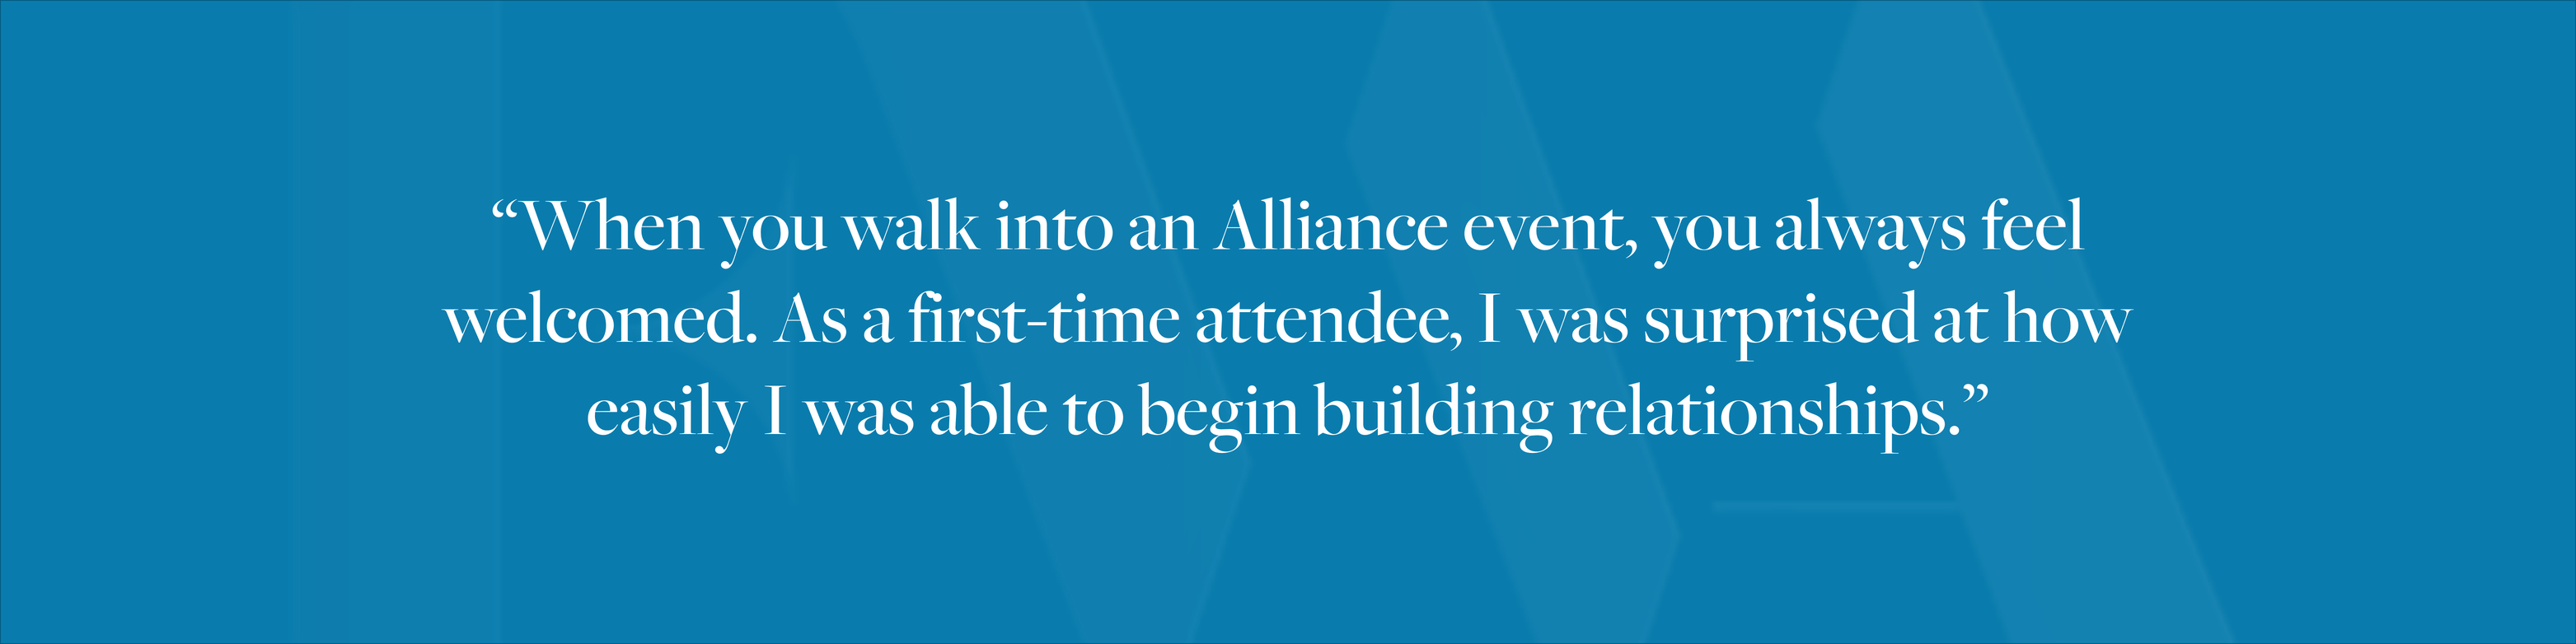 """When you walk into an Alliance event, you always feel welcomed. As a first-time attendee, I was surprised at how easily I was able to begin building relationships."""